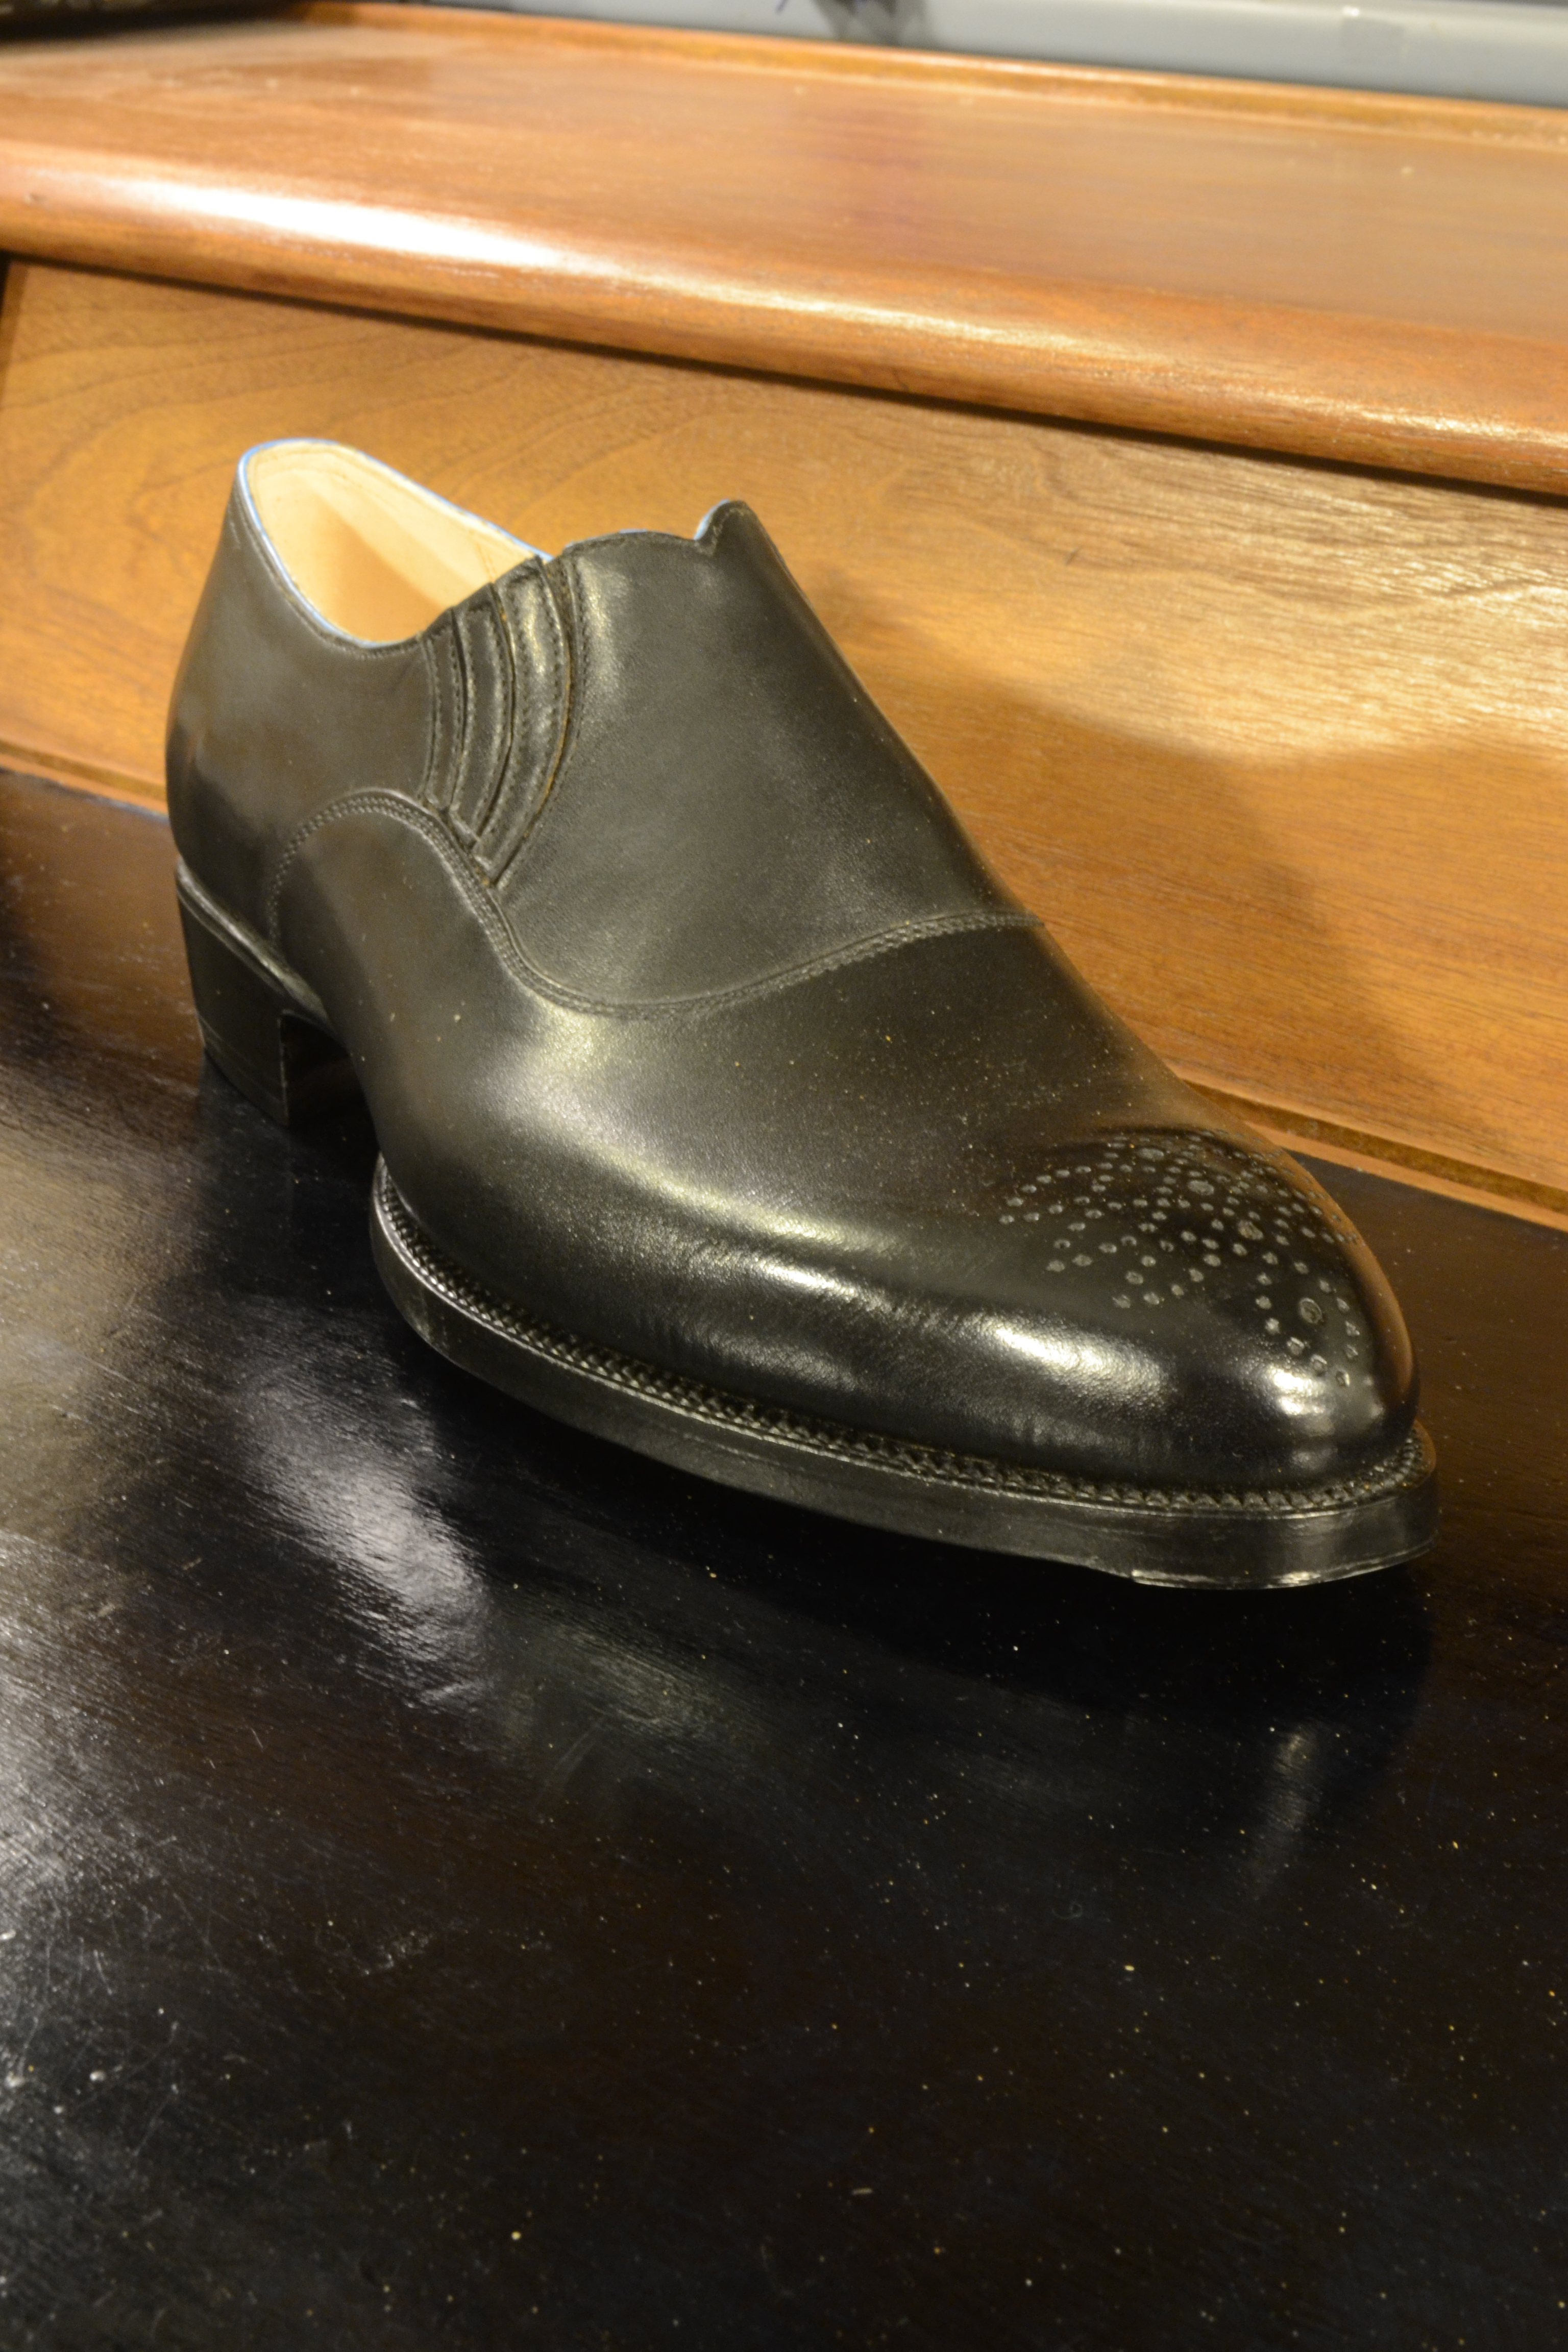 Elrod Shoes | Bespoke Shoemaking Portland Oregon